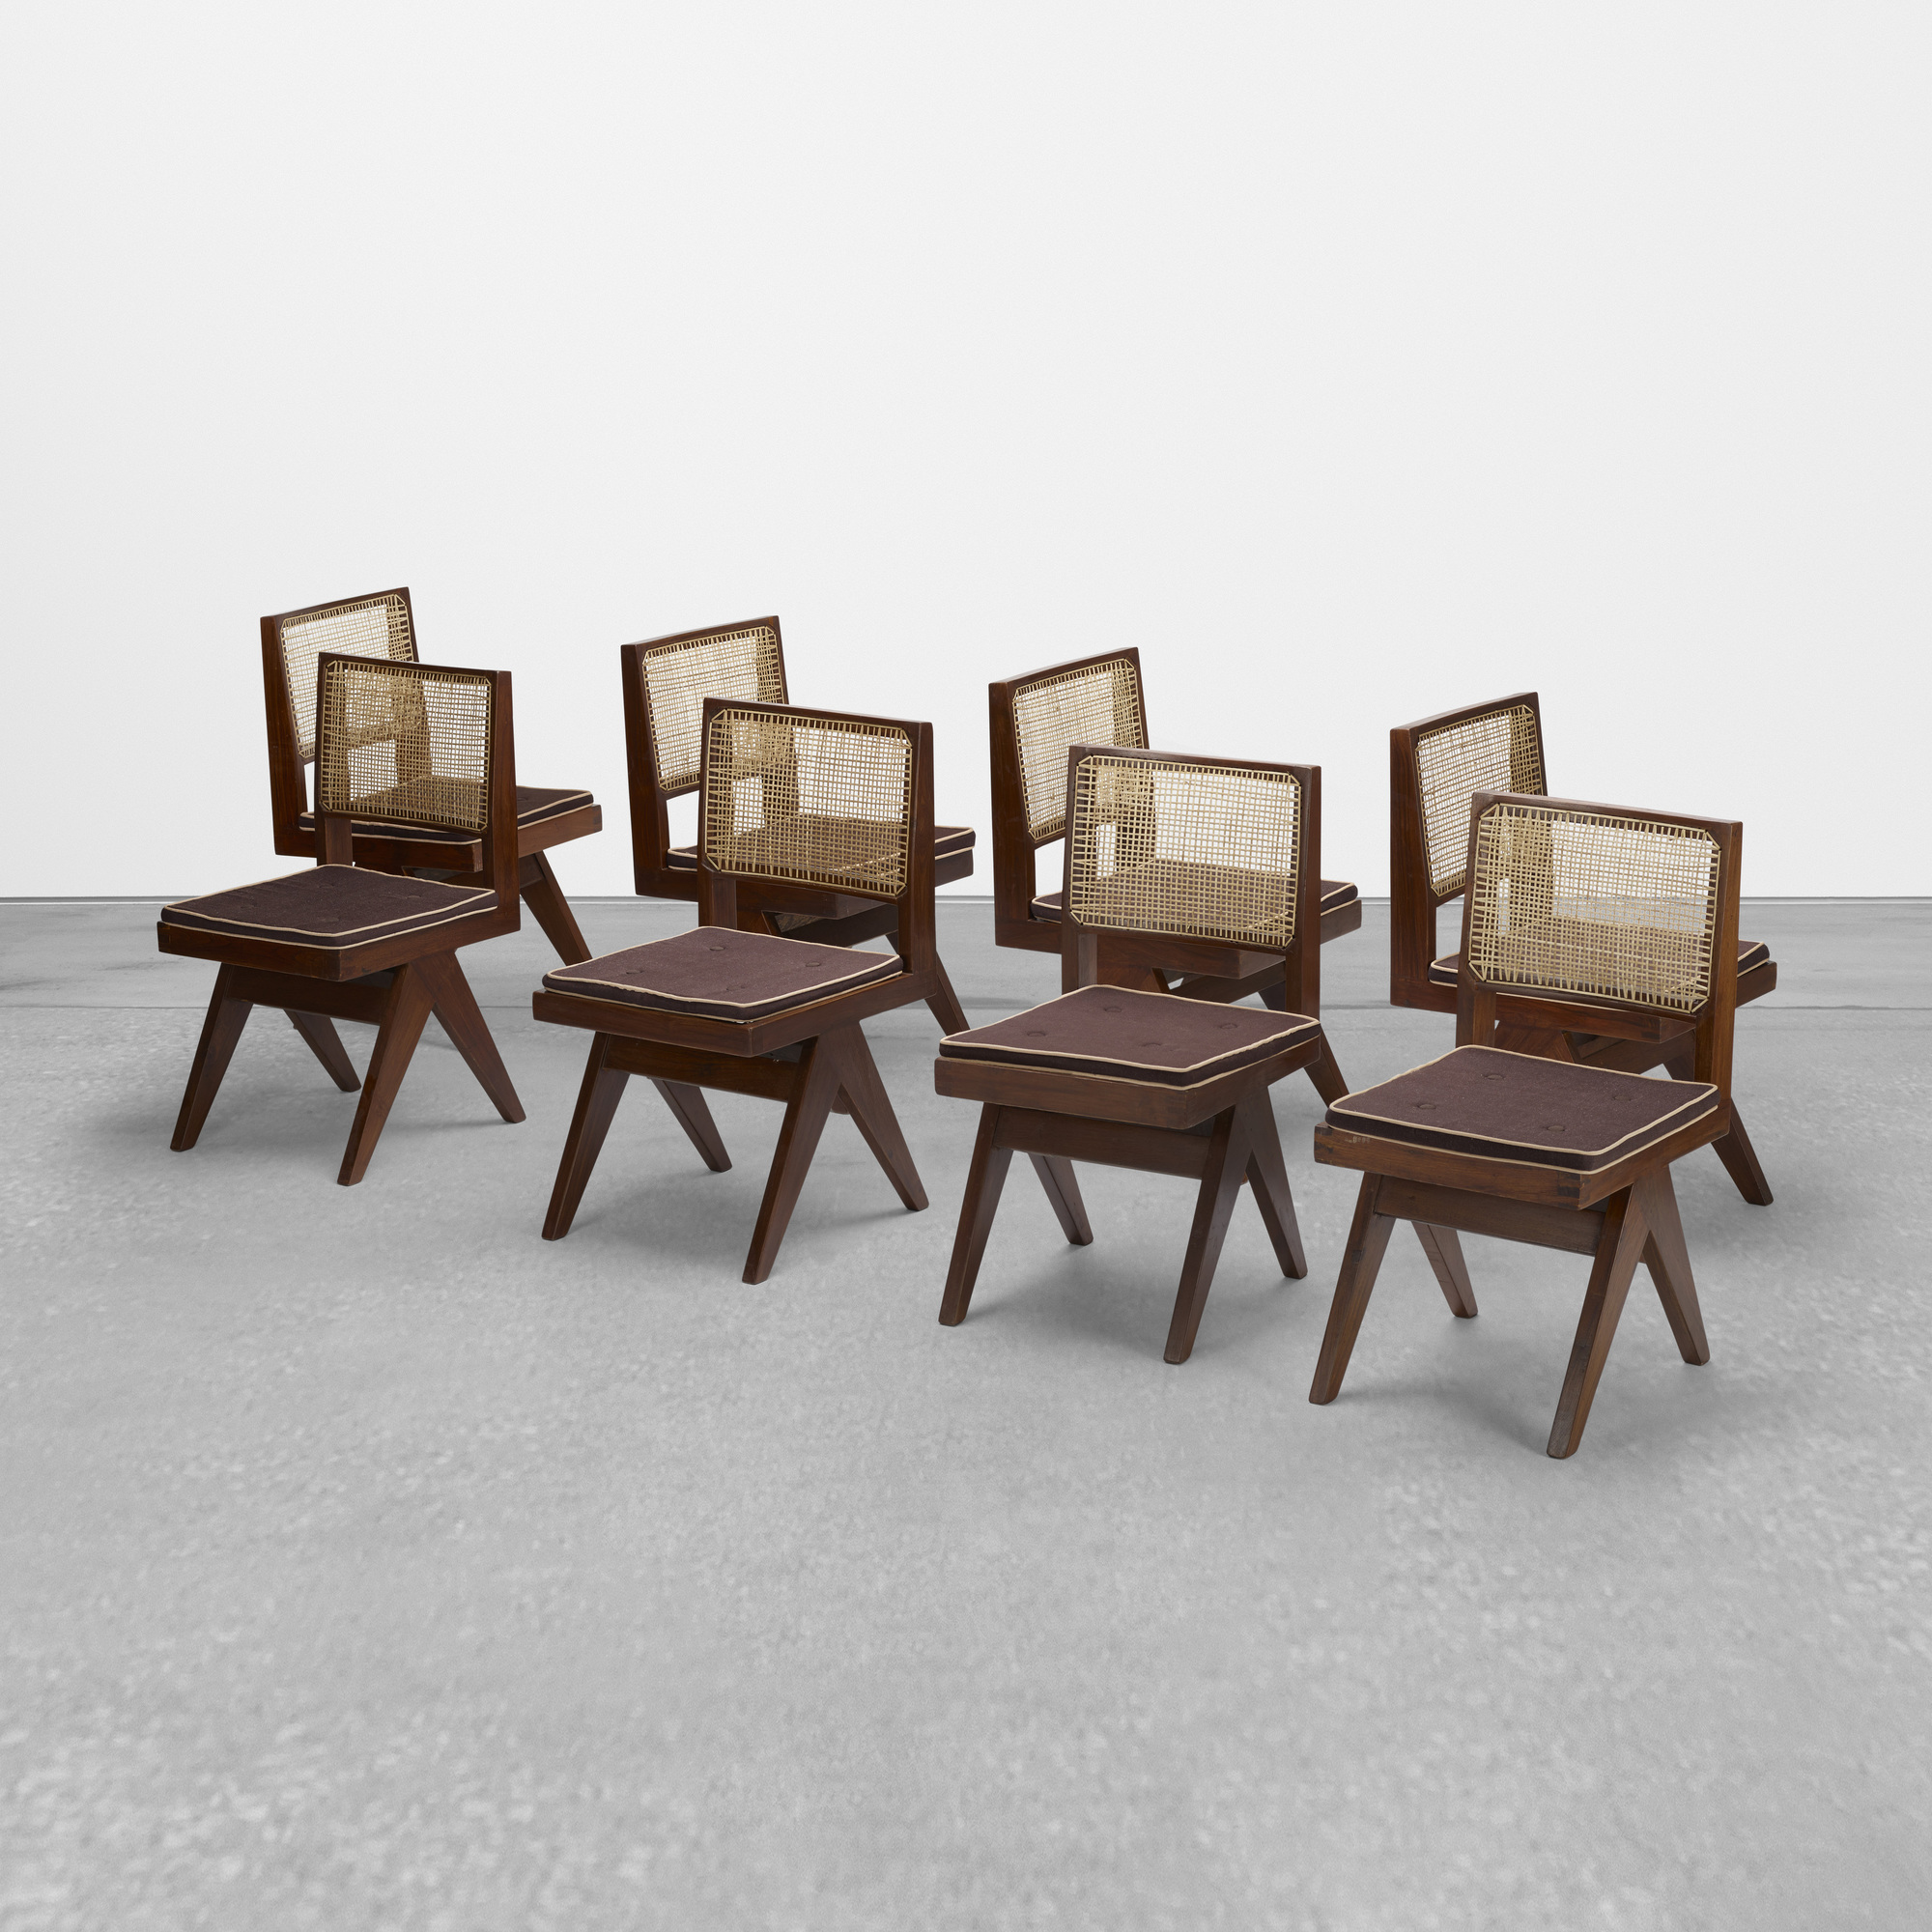 104: Pierre Jeanneret / set of eight chairs from Chandigarh (2 of 4)